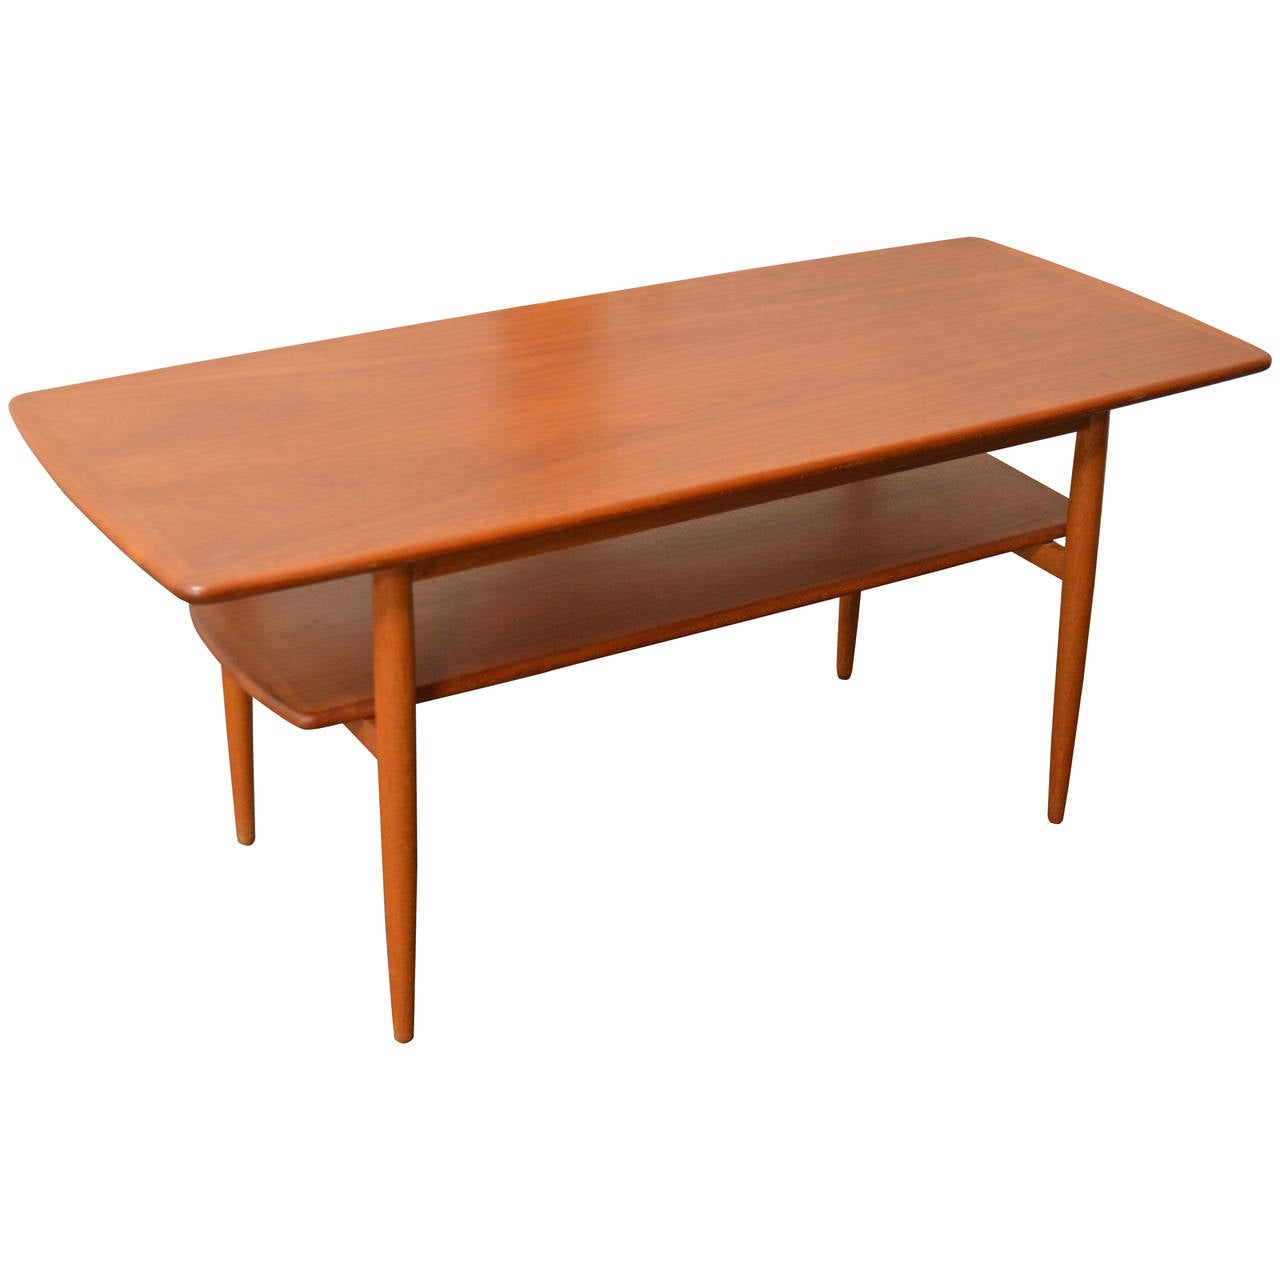 Mid century modern swedish teak coffee table with shelf for Modern coffee table